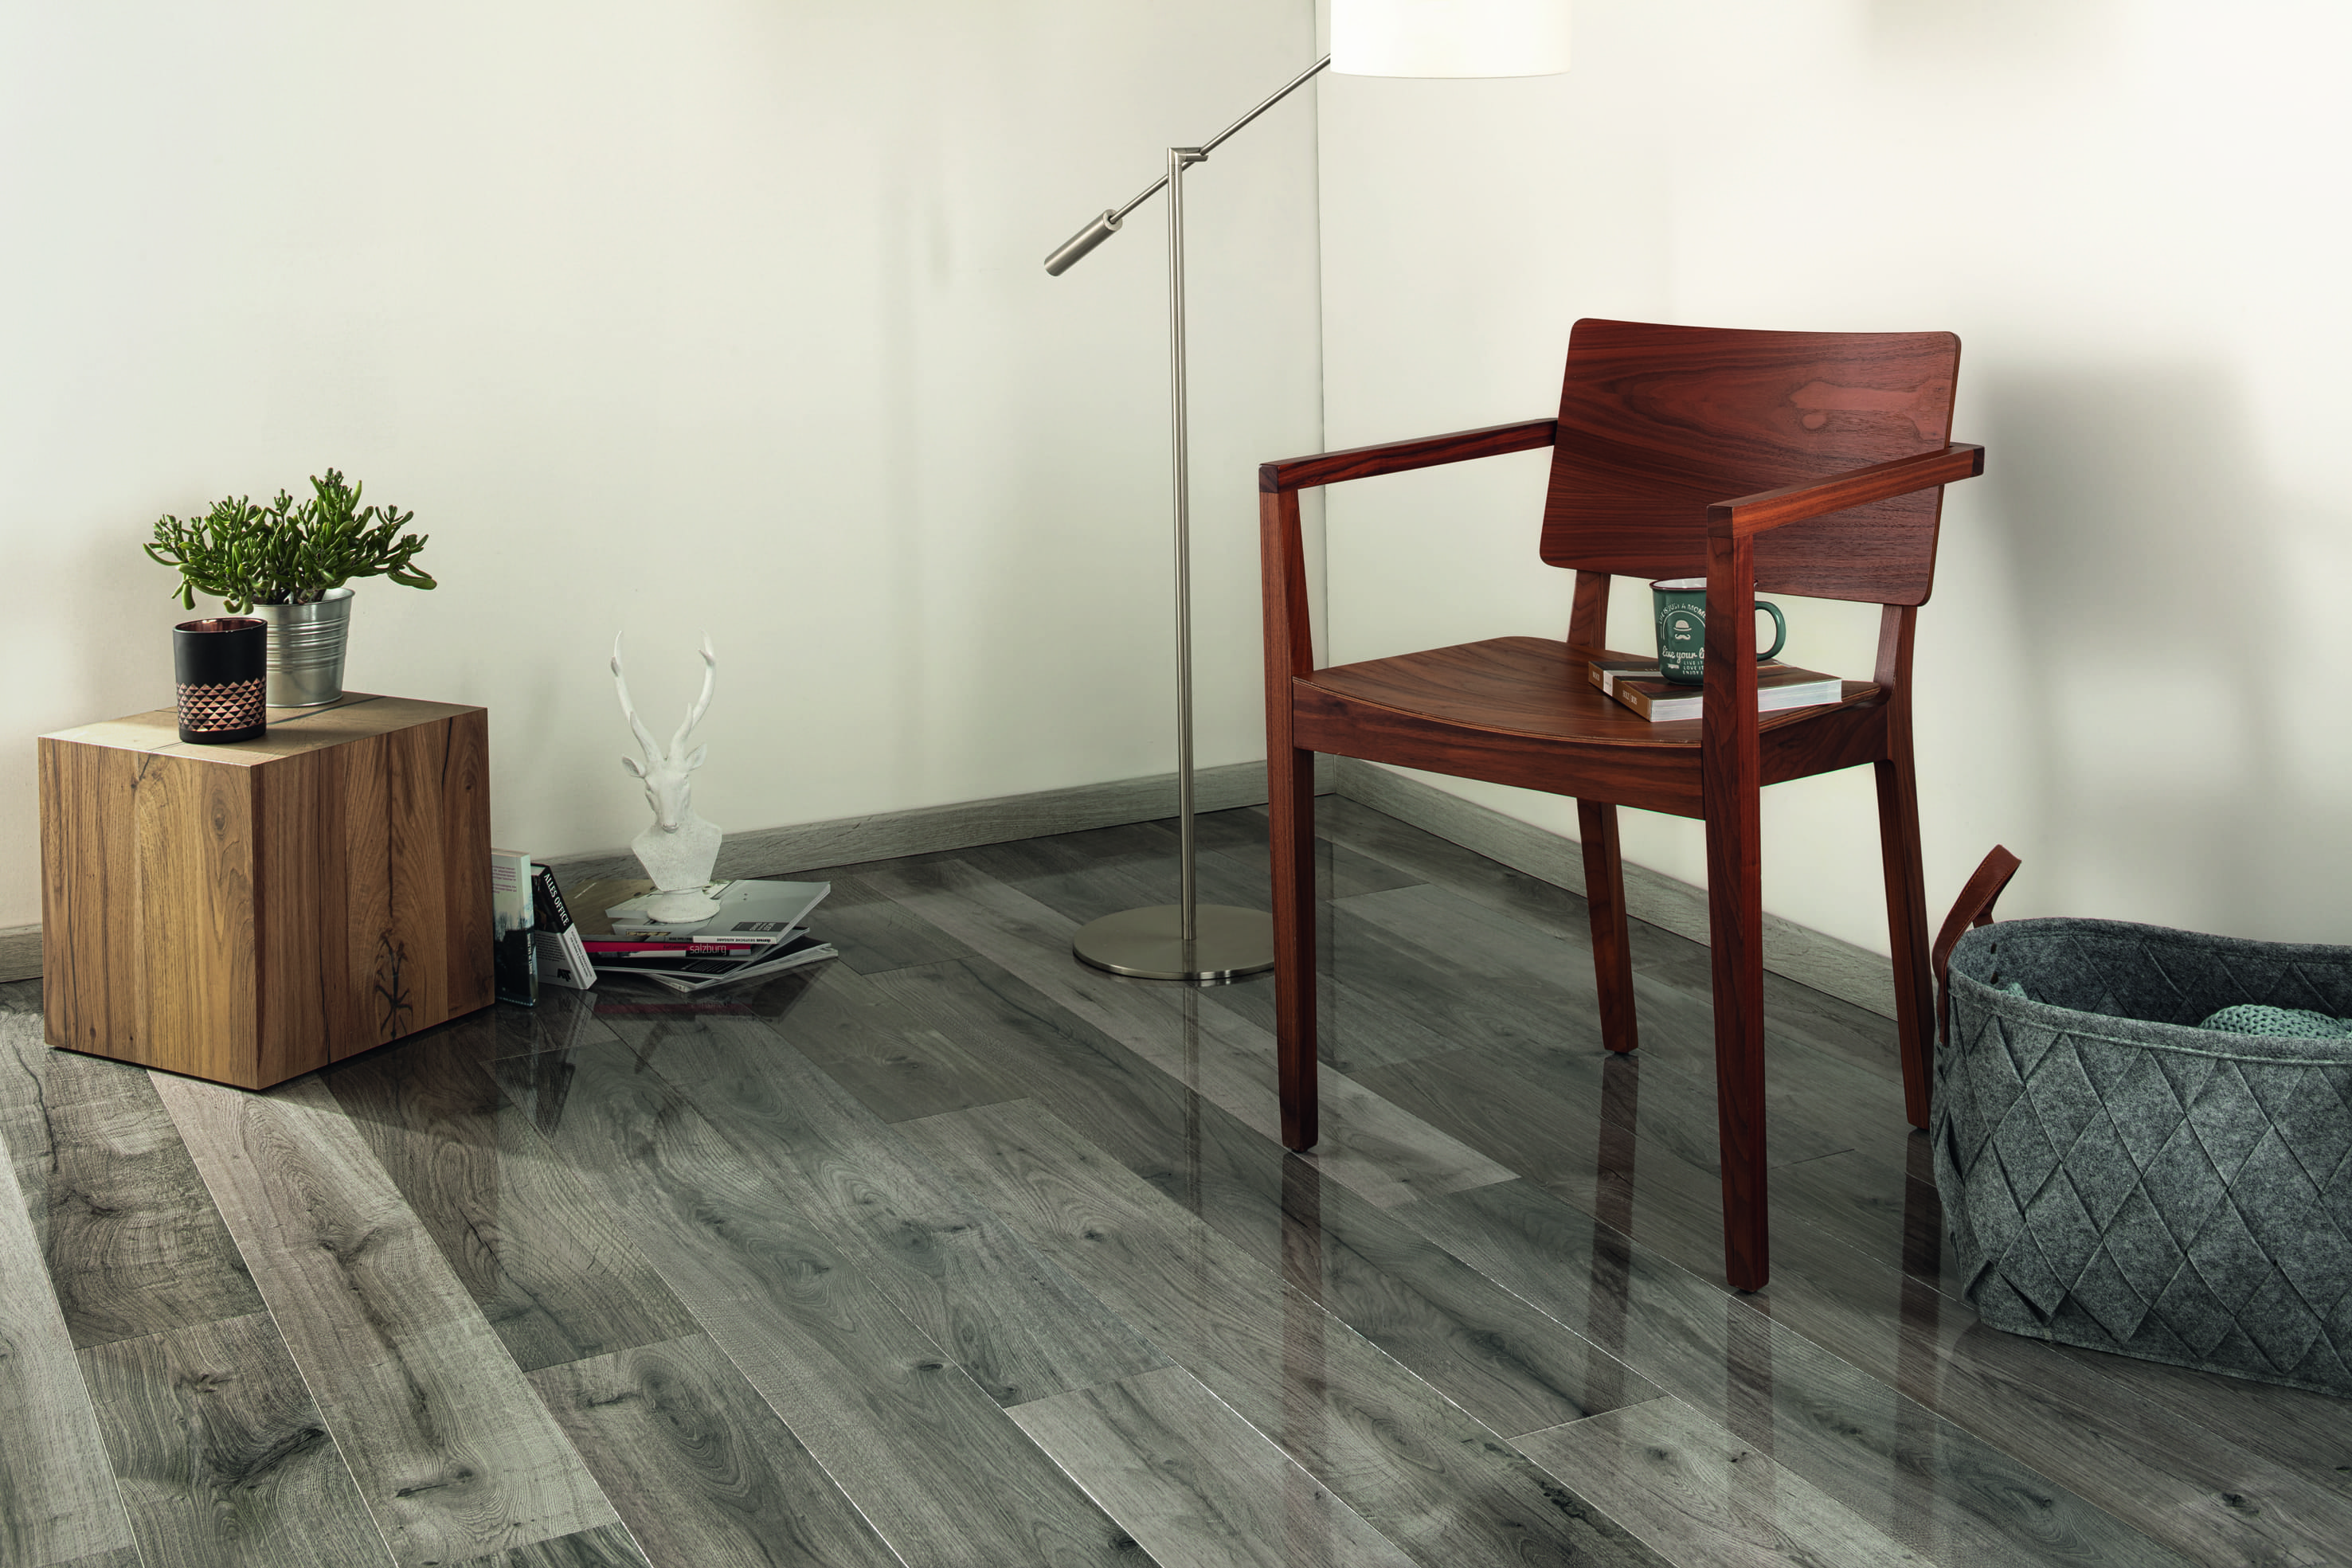 high-gloss flooring modeled in room with chair